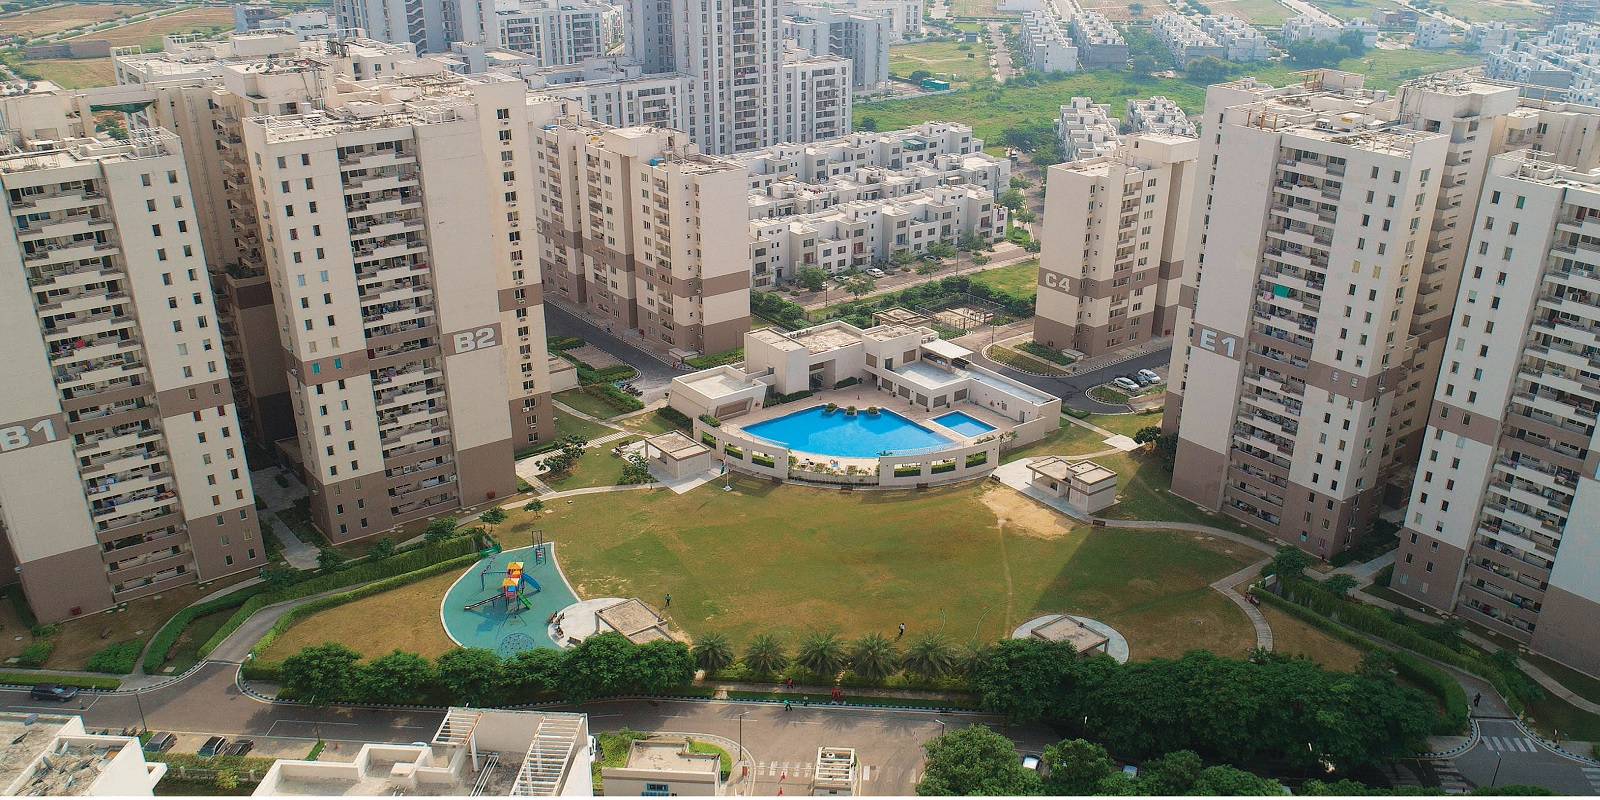 vatika gurgaon 21 tower view7